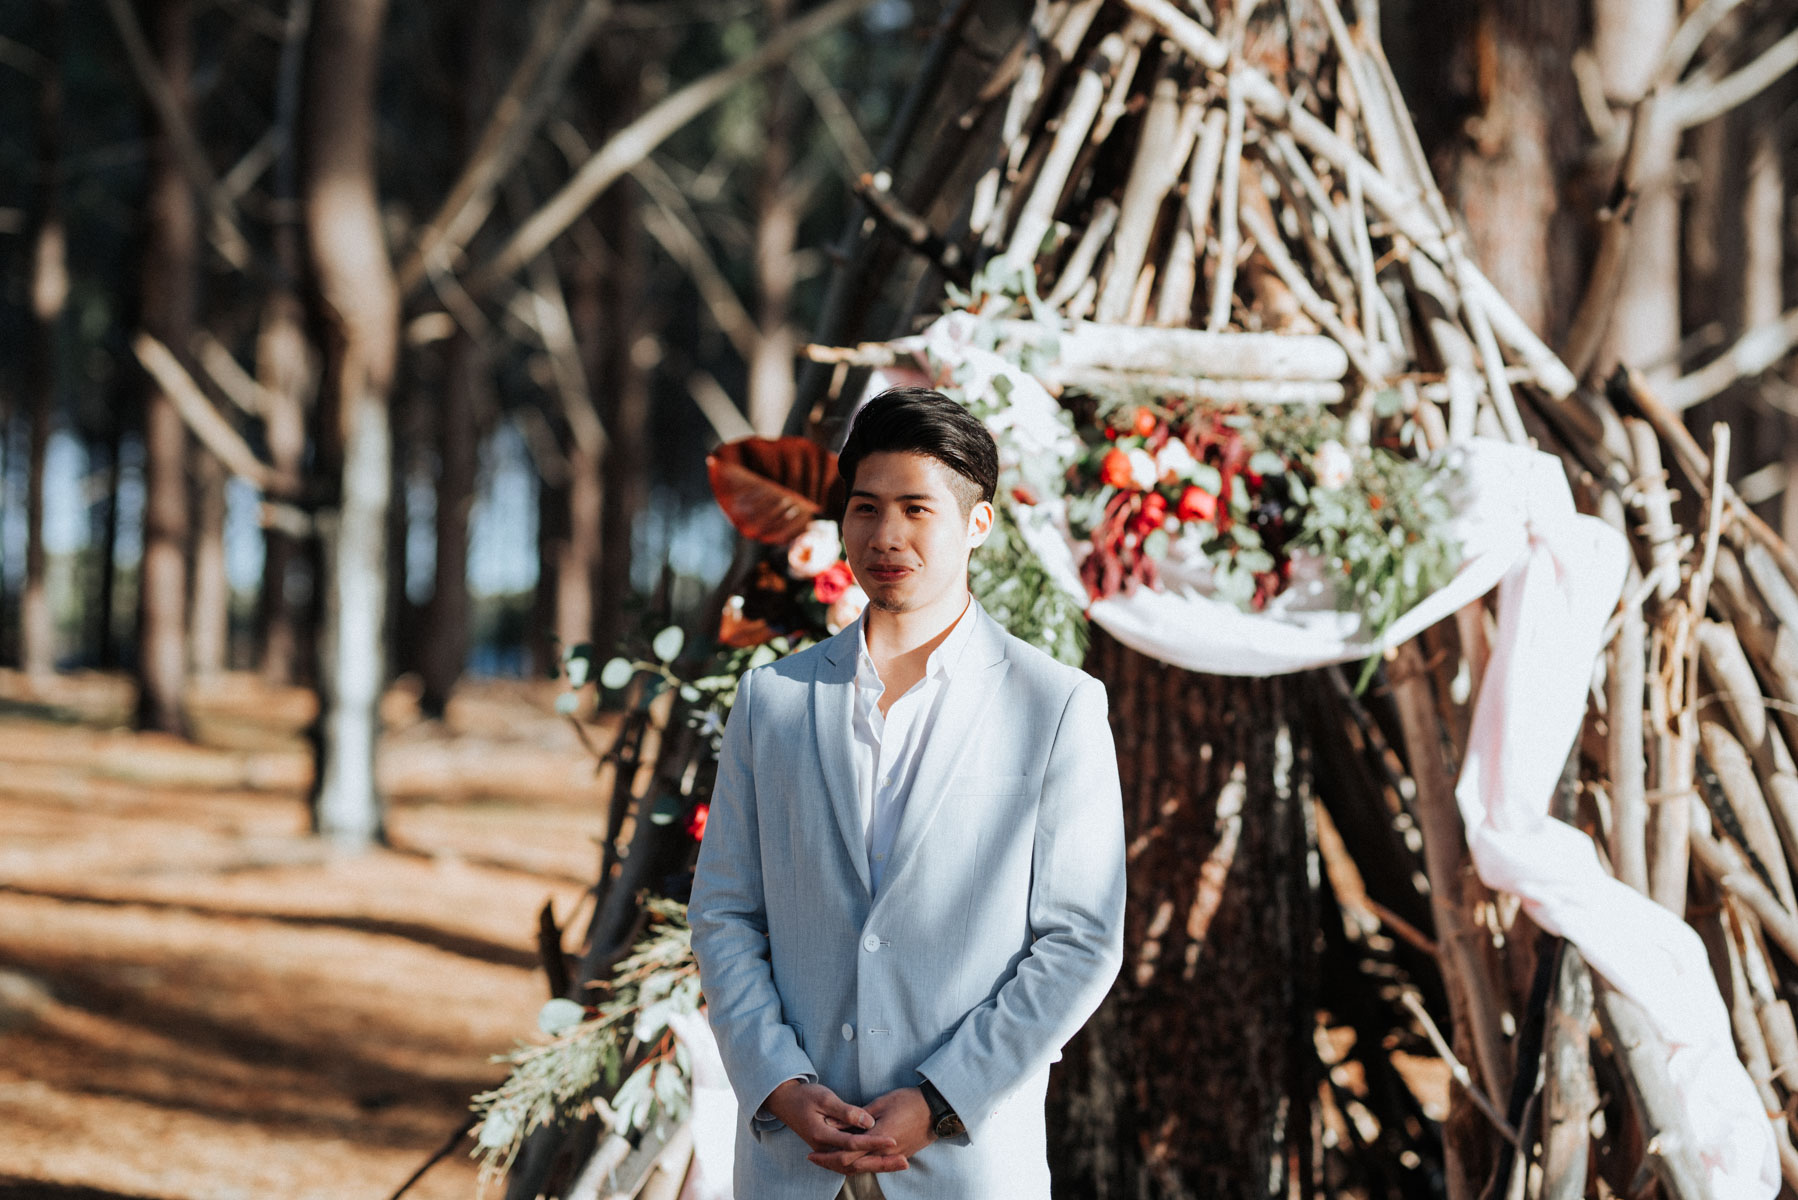 james-julene-forest-elopement-perth-4.JPG